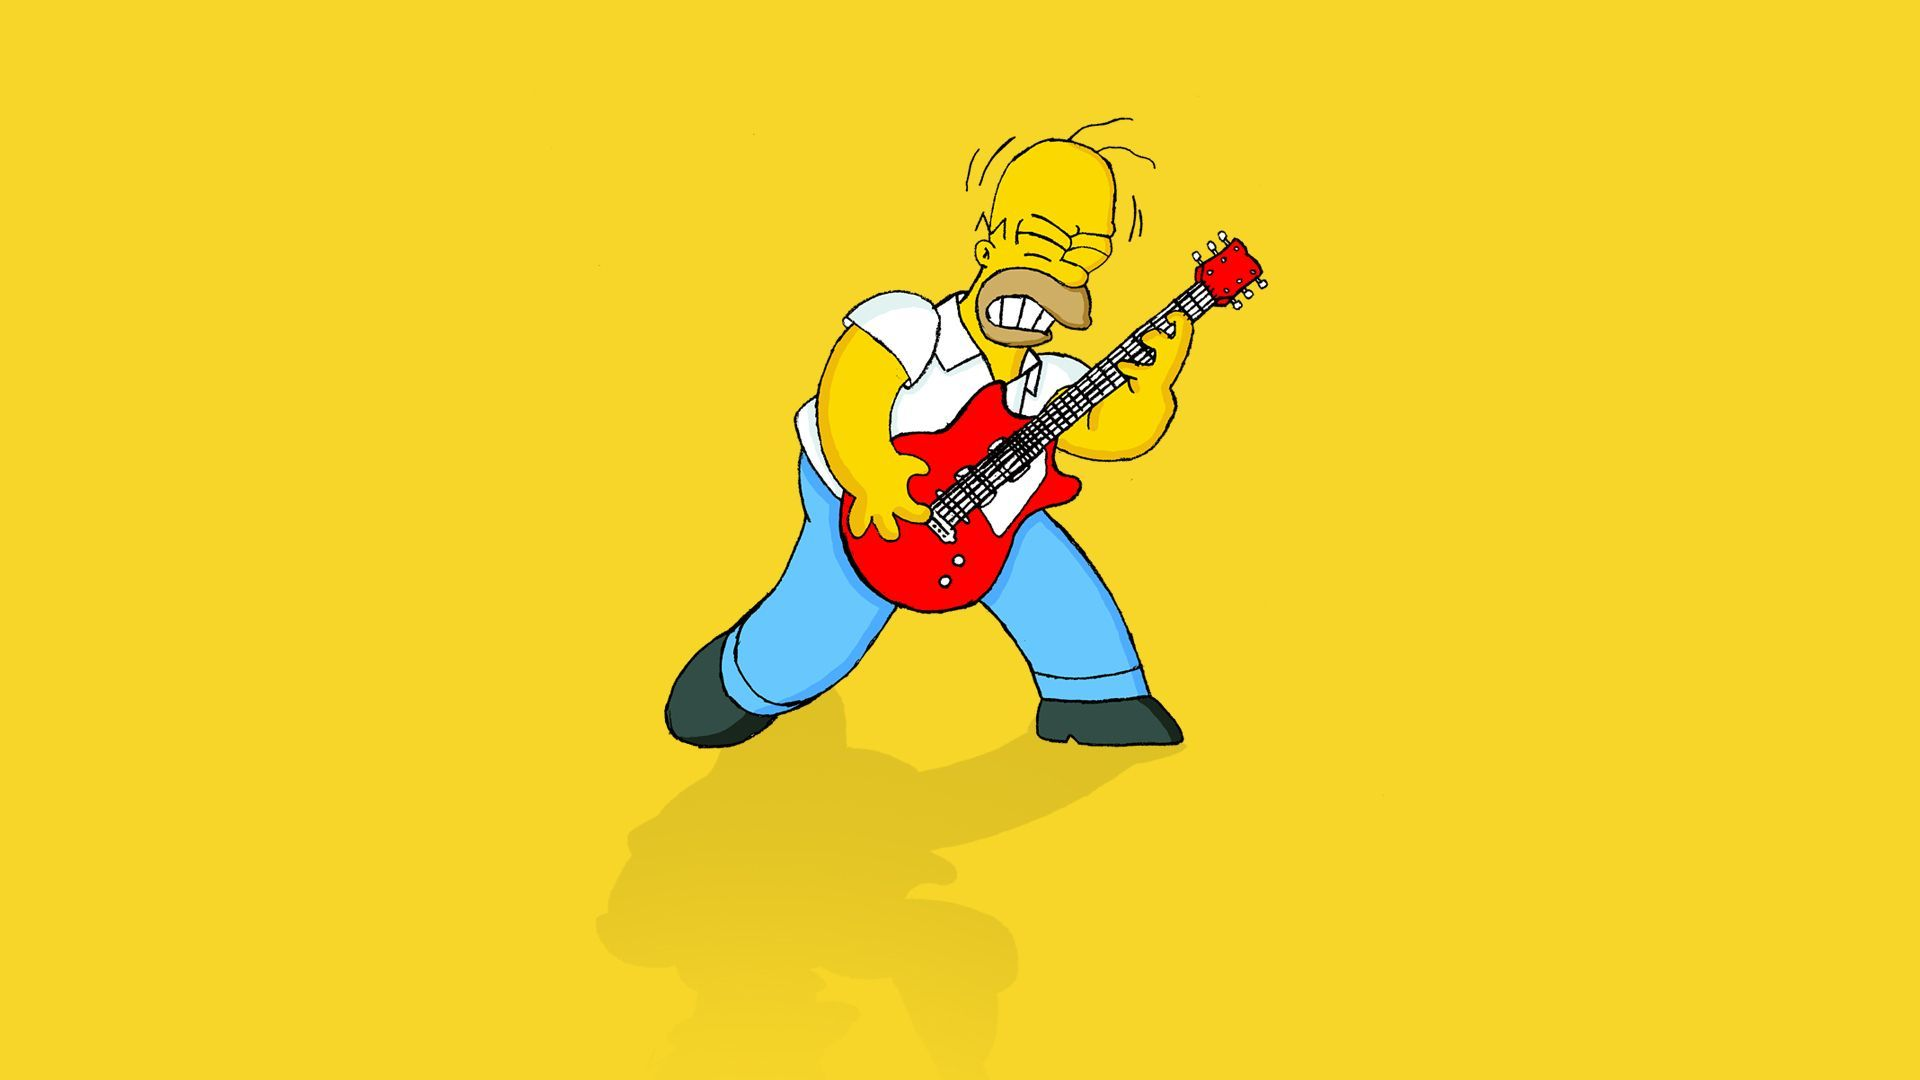 Bart Simpson Images Bart Simpson Wallpaper And Background Photos Гомер Симп( )